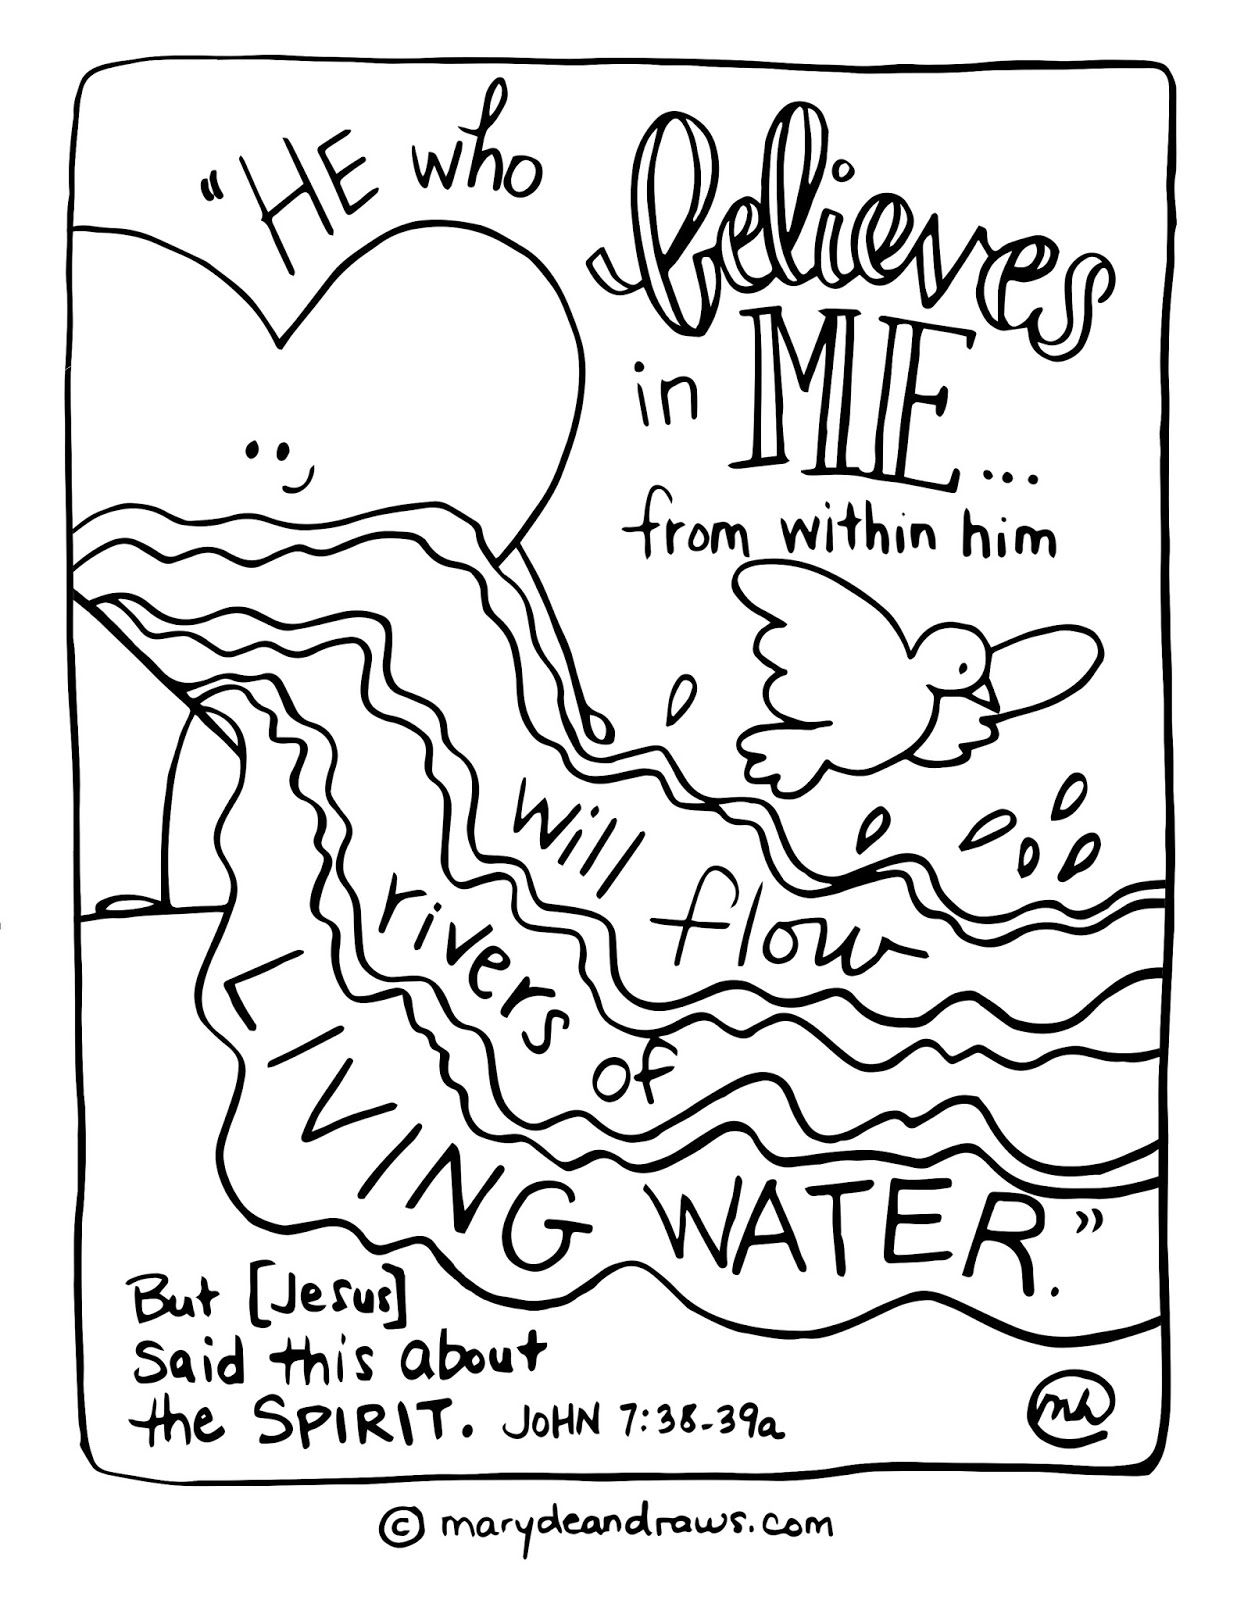 rivers of living water John 7 38